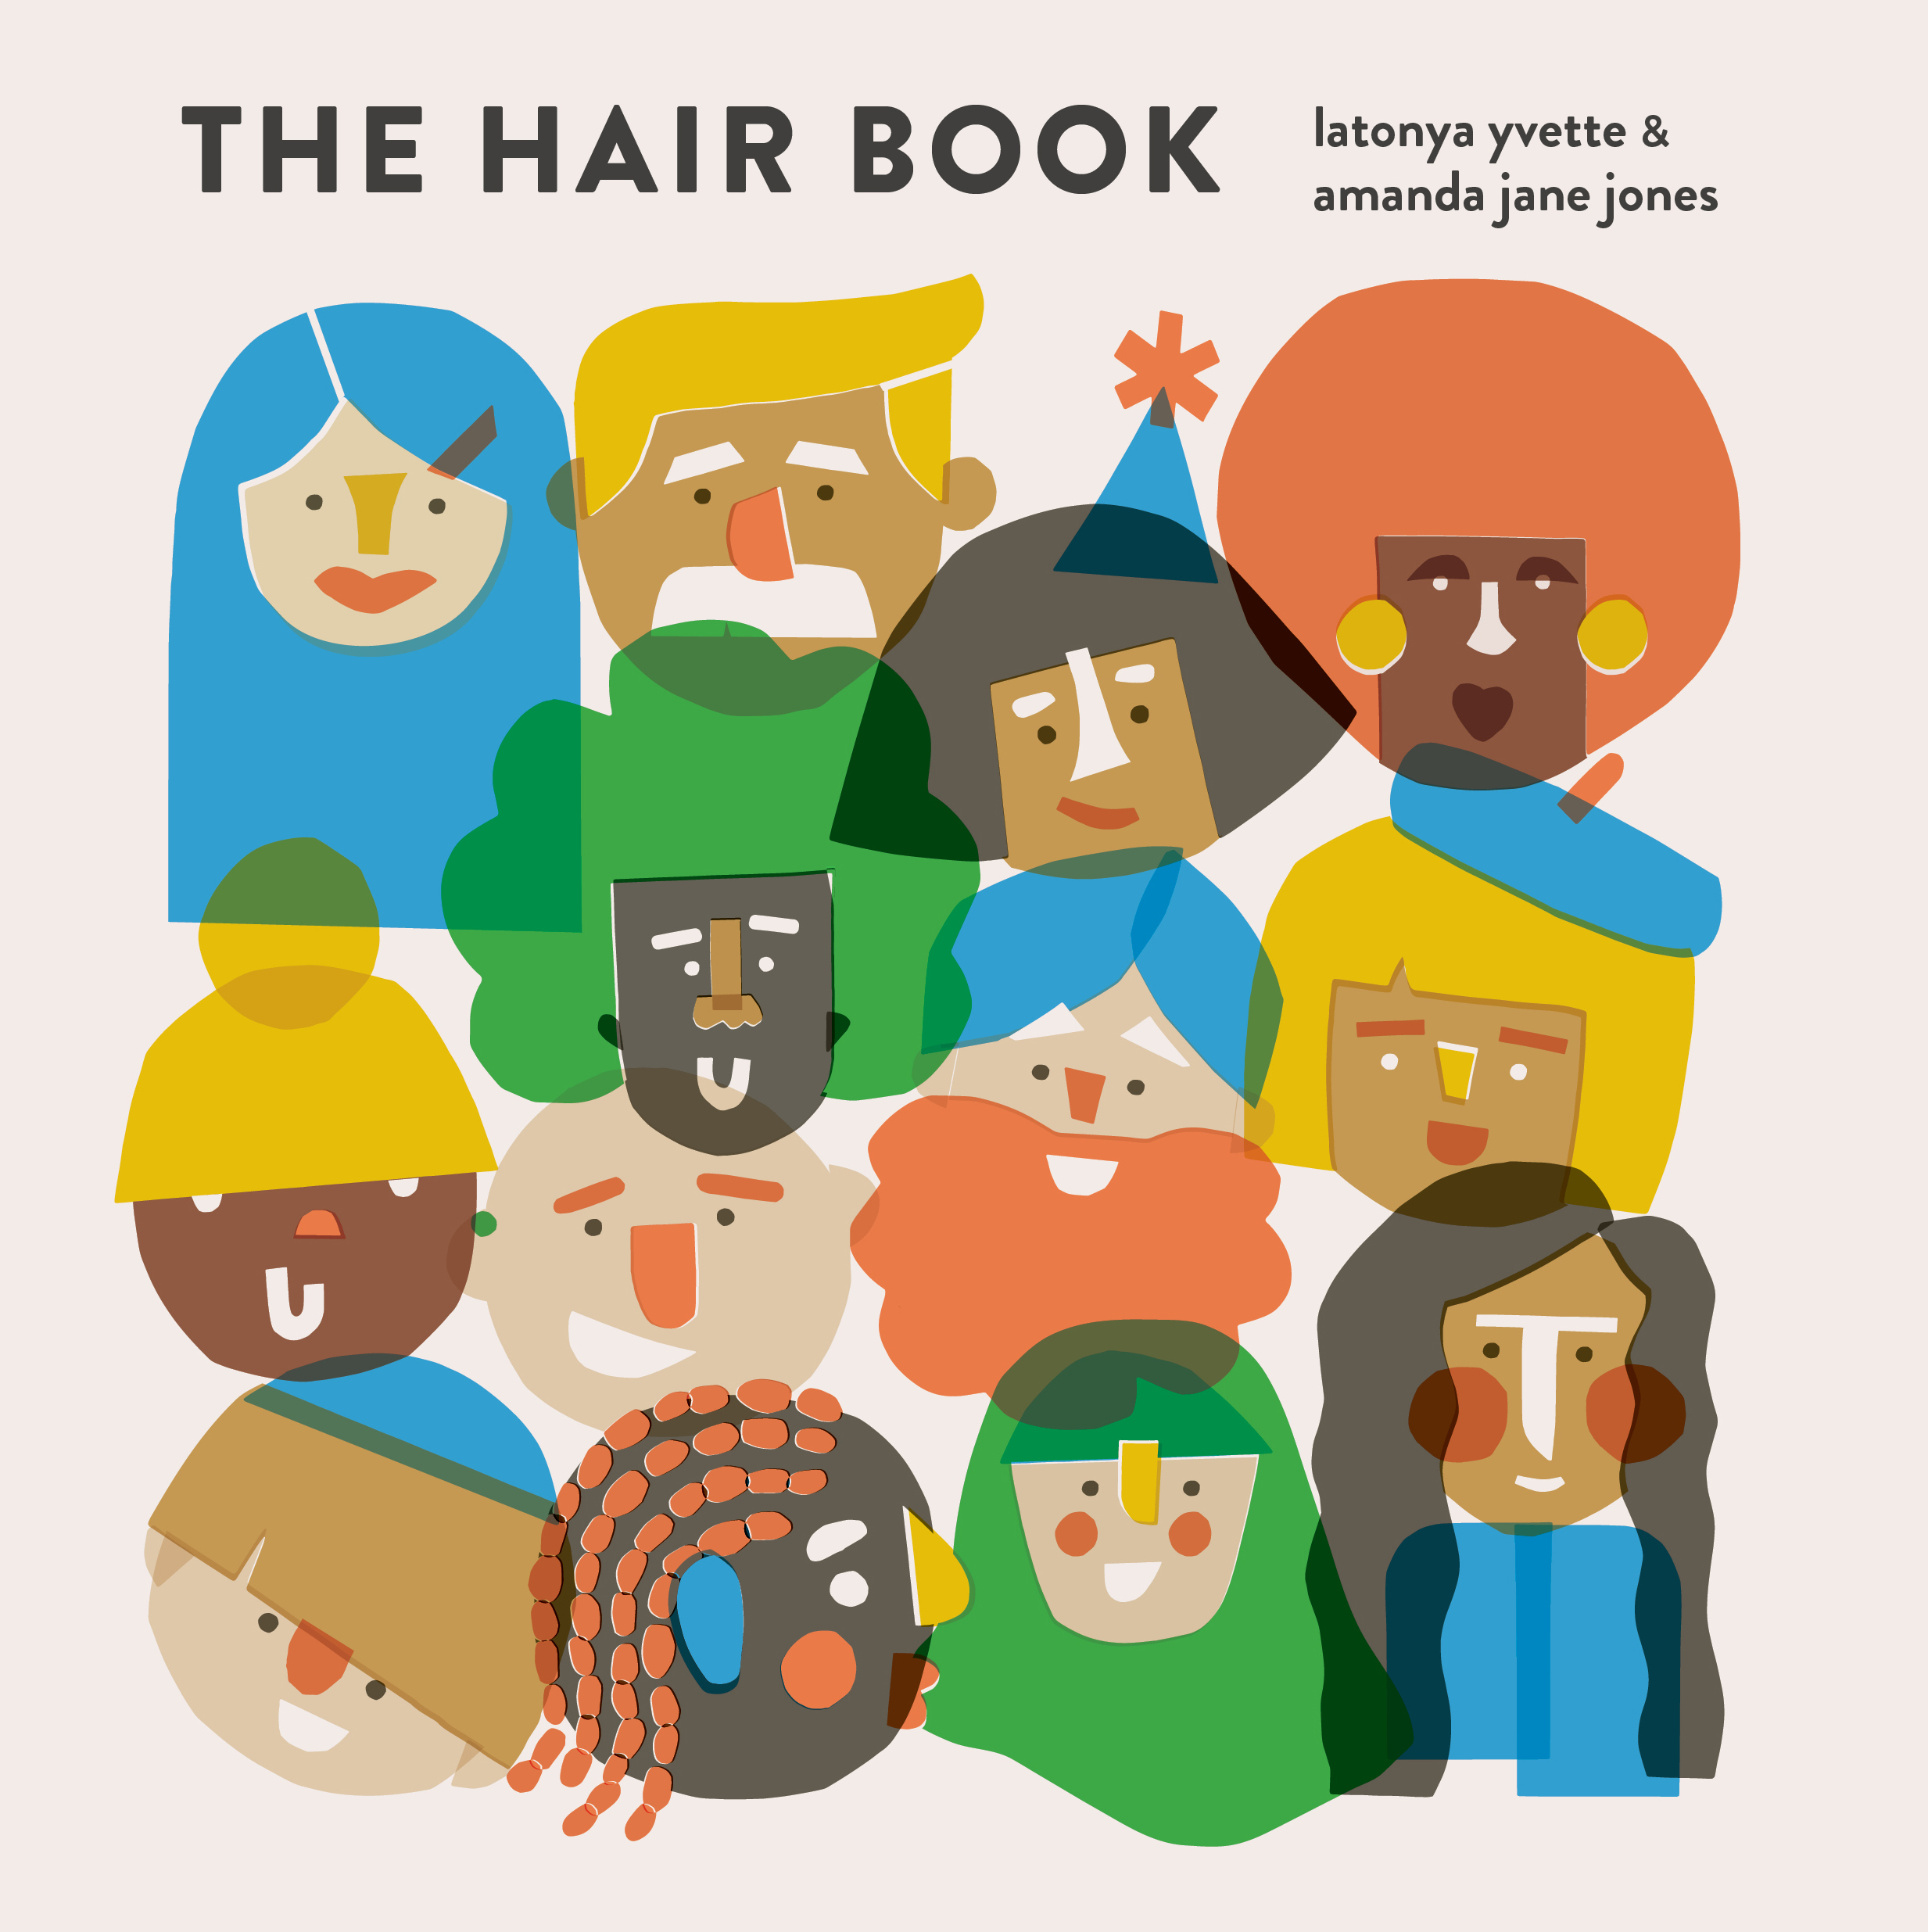 the hair book picture cover